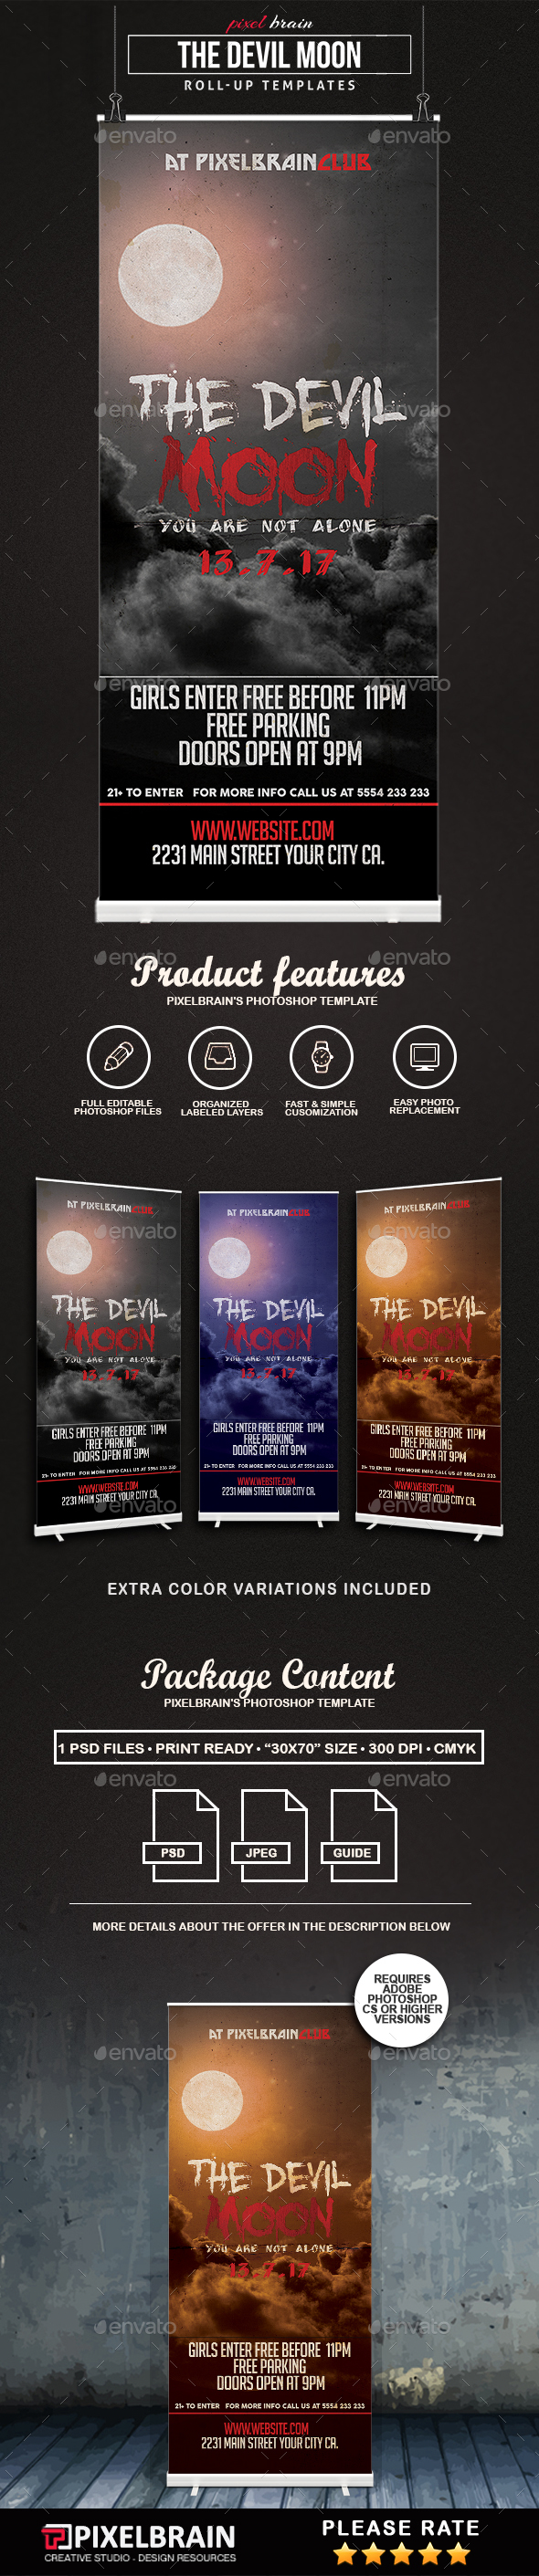 The Devil Moon Roll-Up Templates Vol. 2 - Signage Print Templates